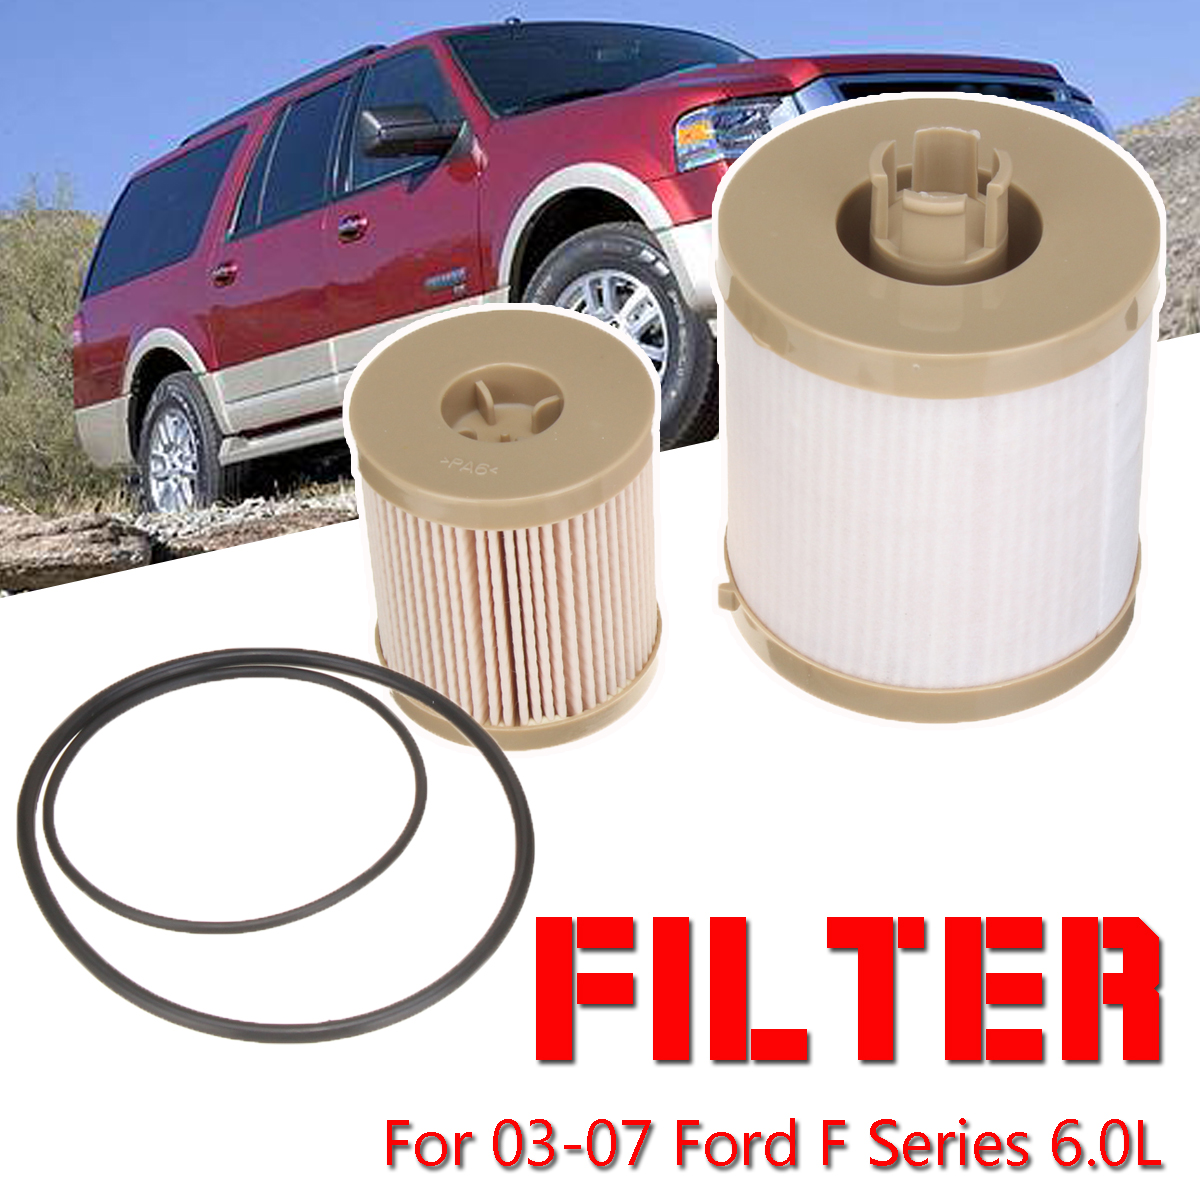 medium resolution of automobile oil filters petrol gas gasoline liquid fuel filters car oil filter replacement for ford 2003